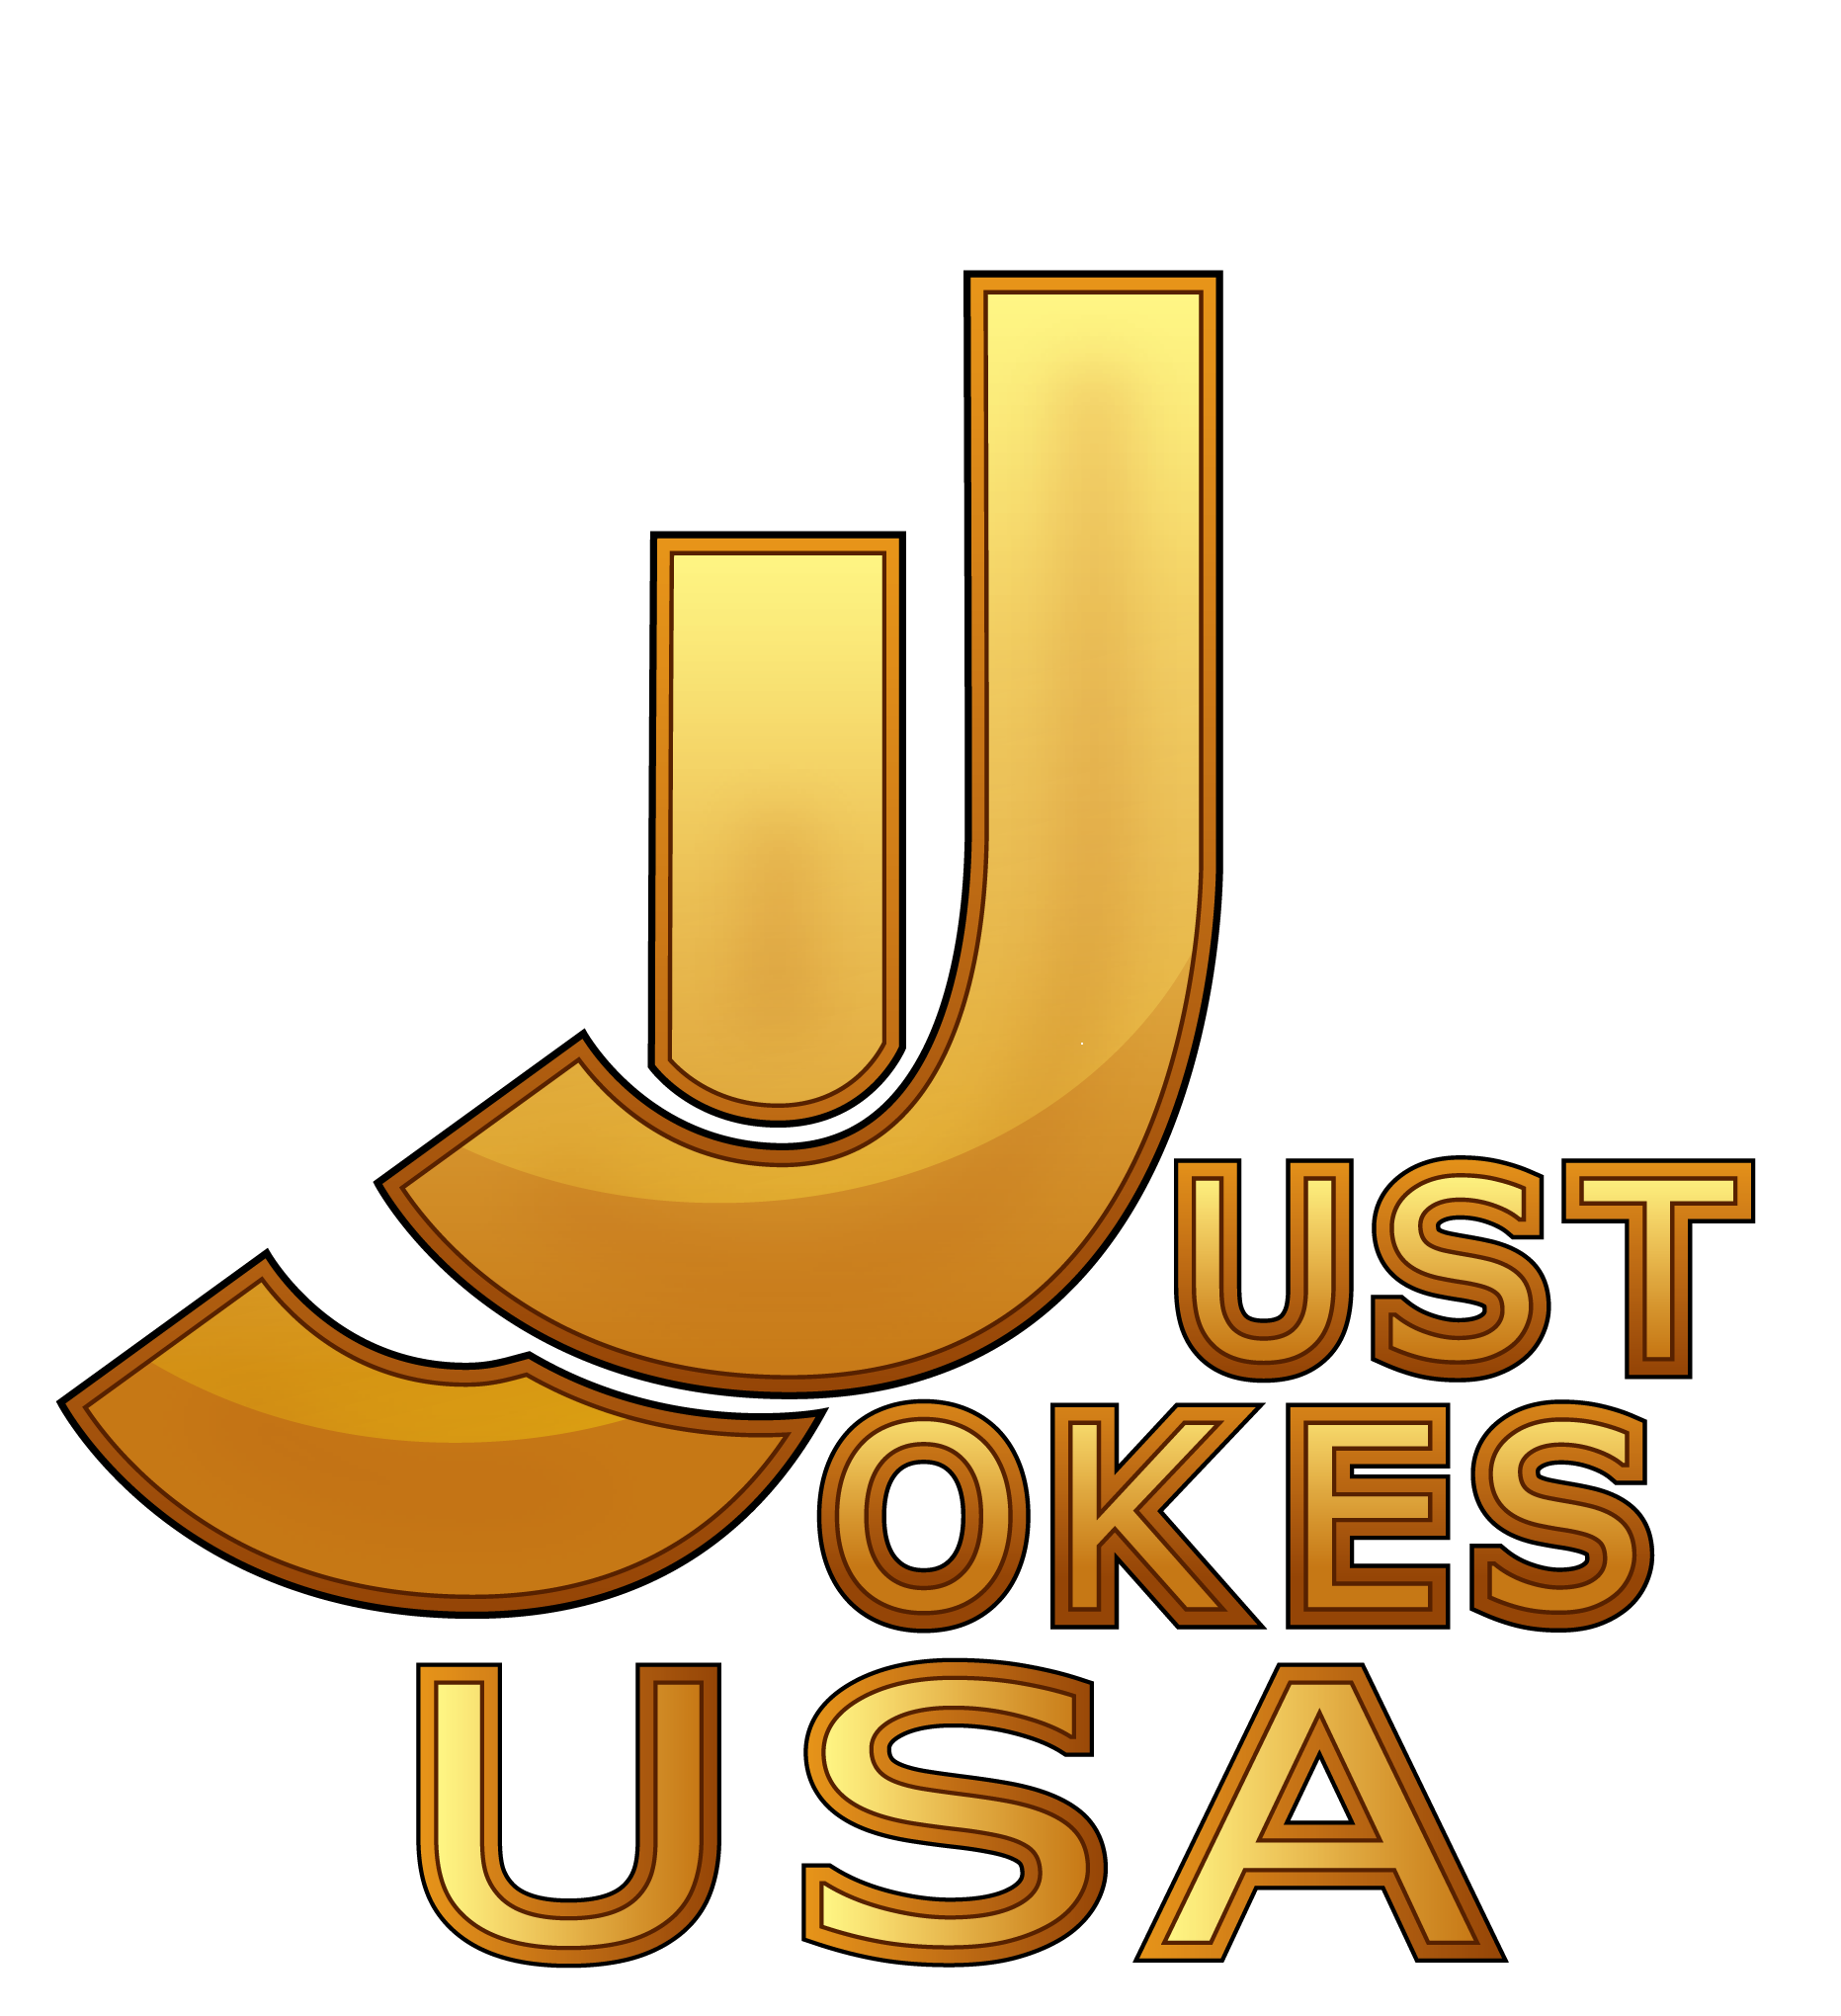 JUST JOKES USA